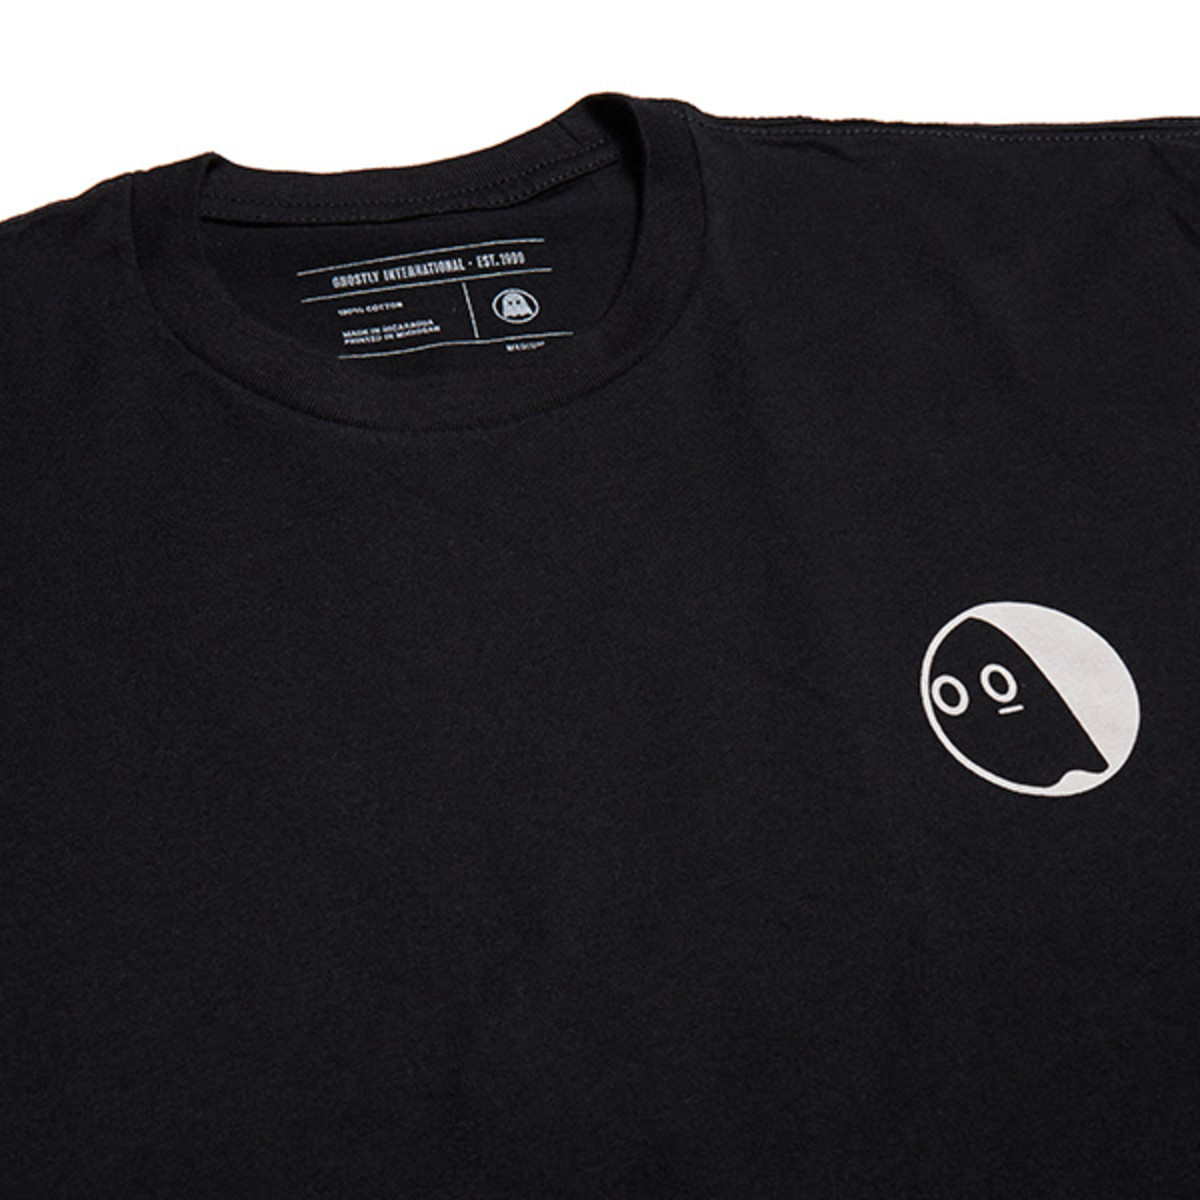 Ghostly Spectral Sound Tee